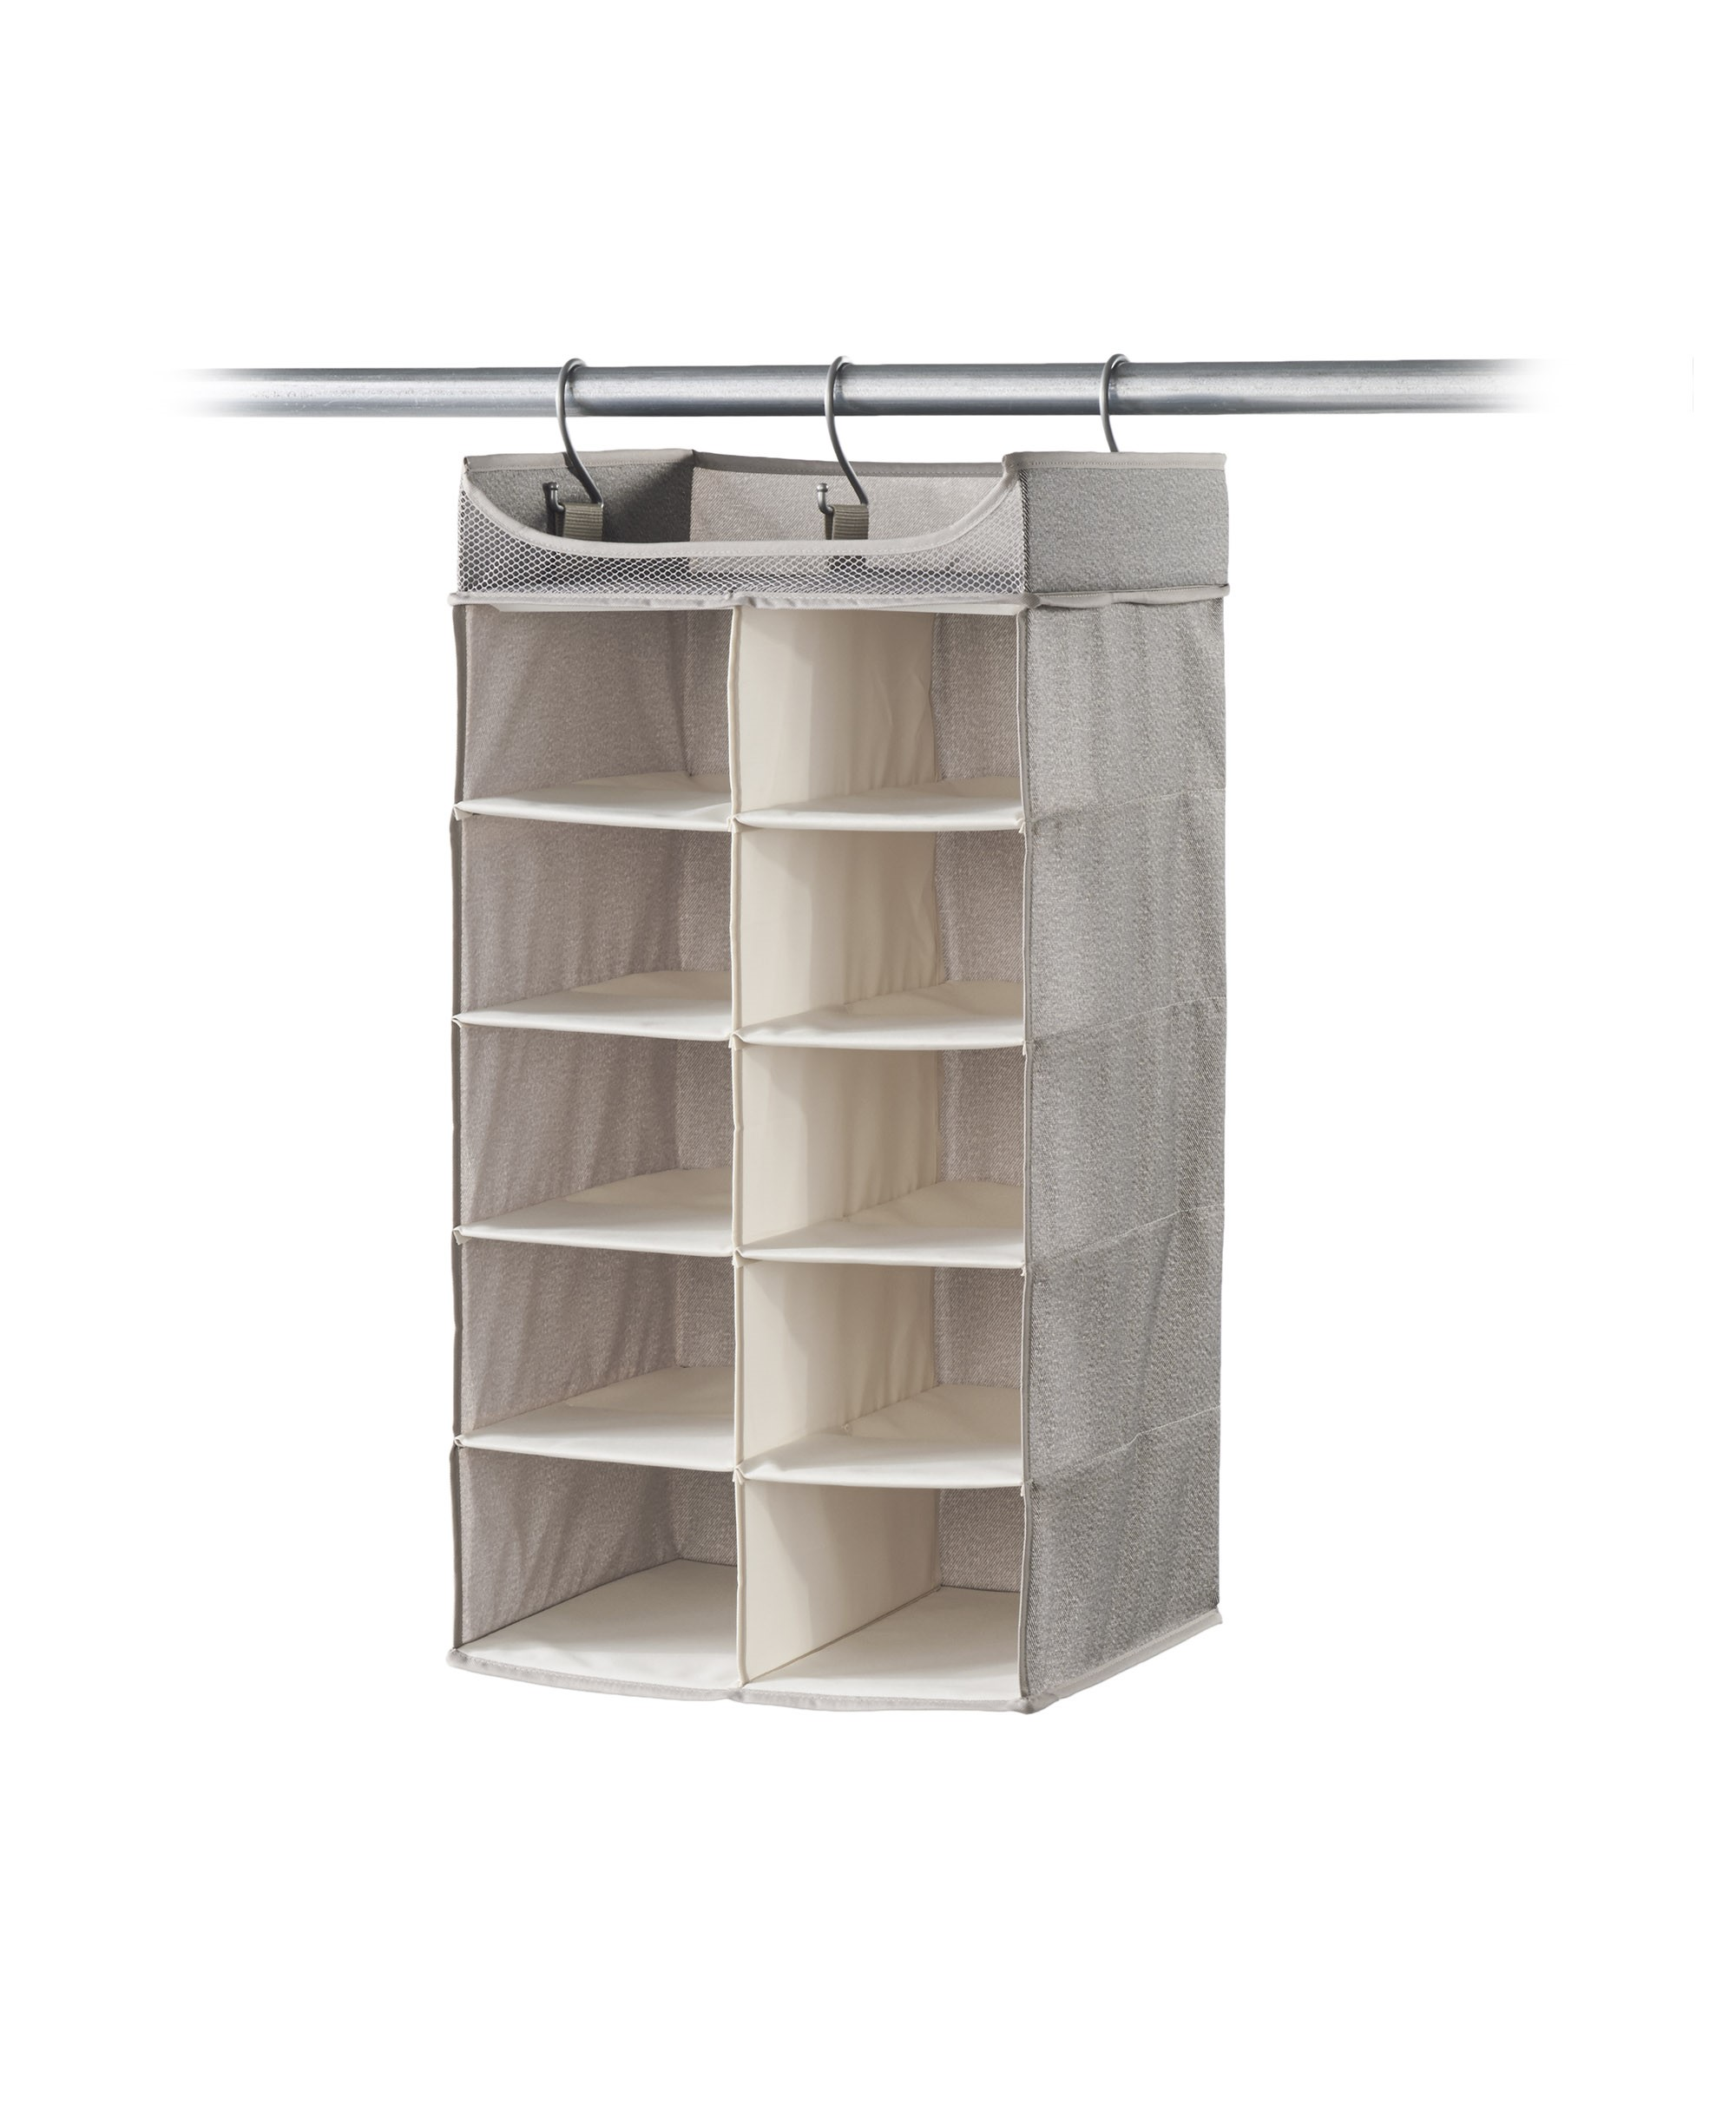 Captivating Neatfreak Hanging Shelf Closet Organizer, 2 X 5 Shelves, Harmony Twill